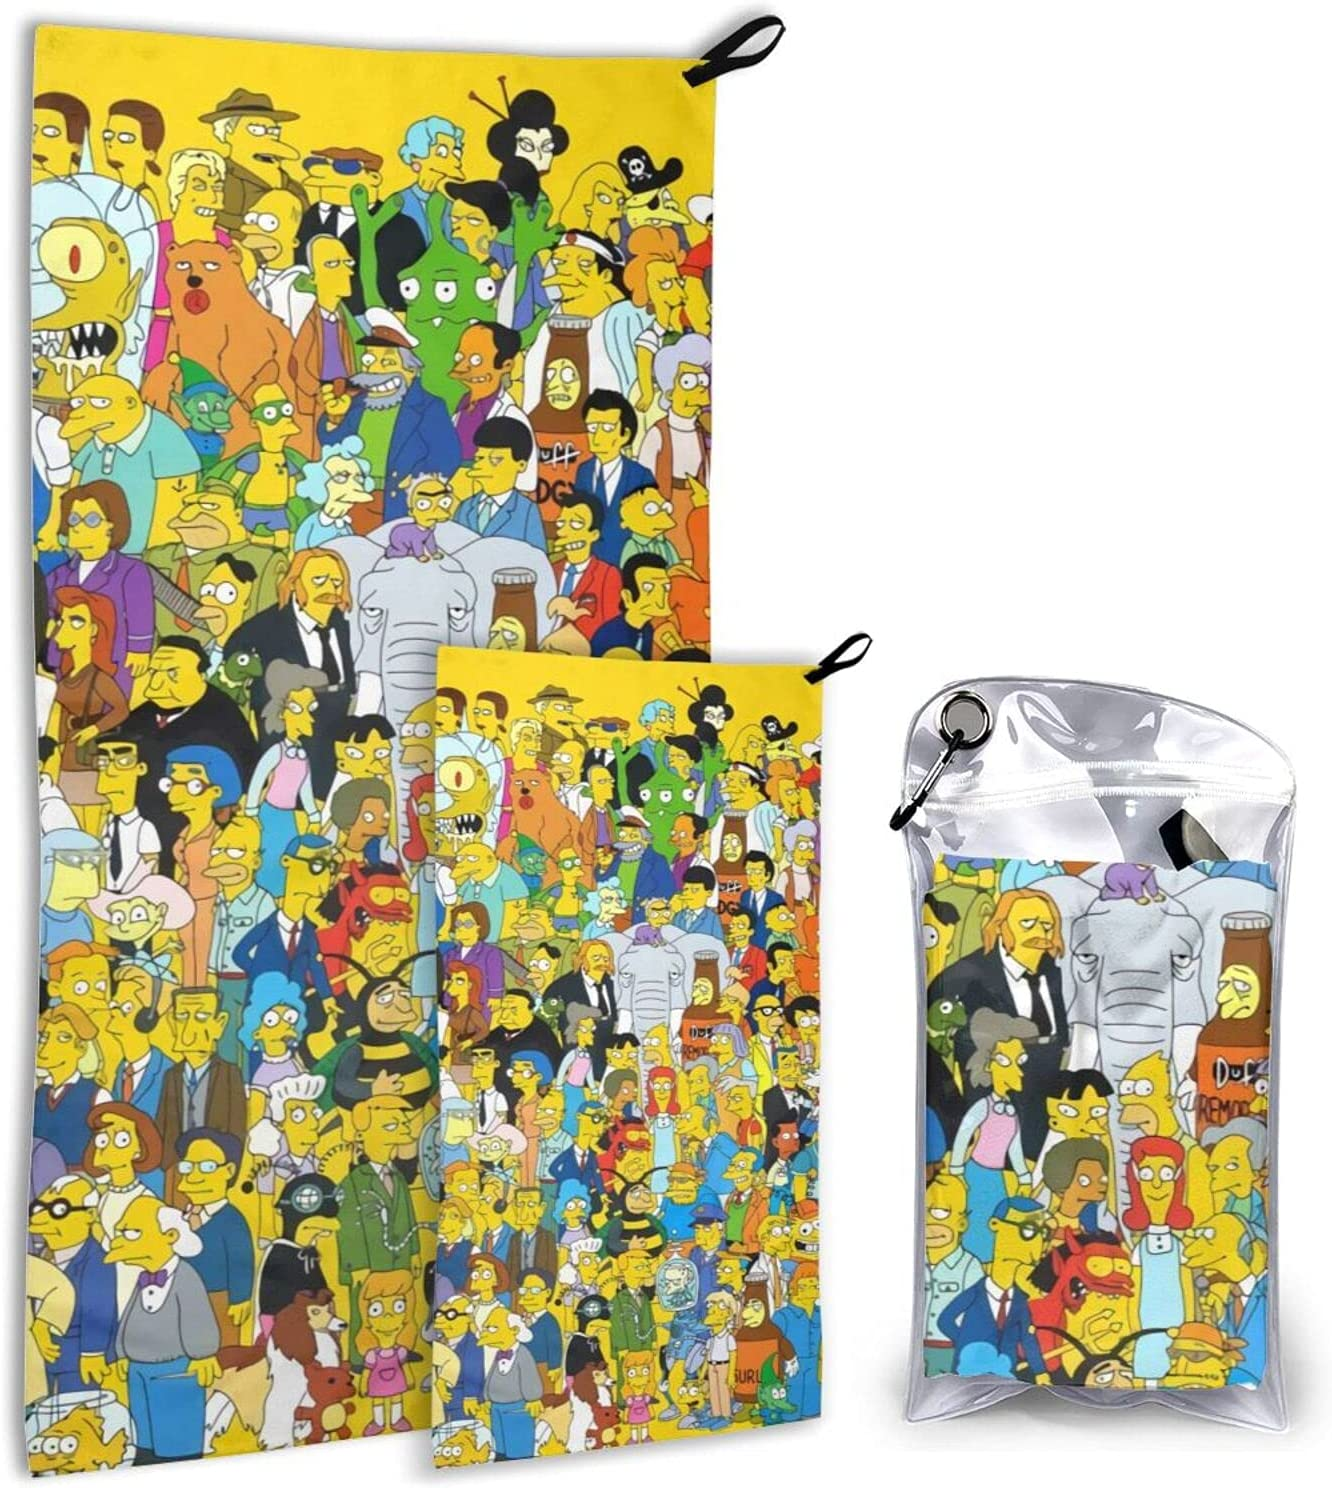 The Atlanta Mall Simpsons SALENEW very popular! Animation Camping Travel Soft Towel-Super Compact